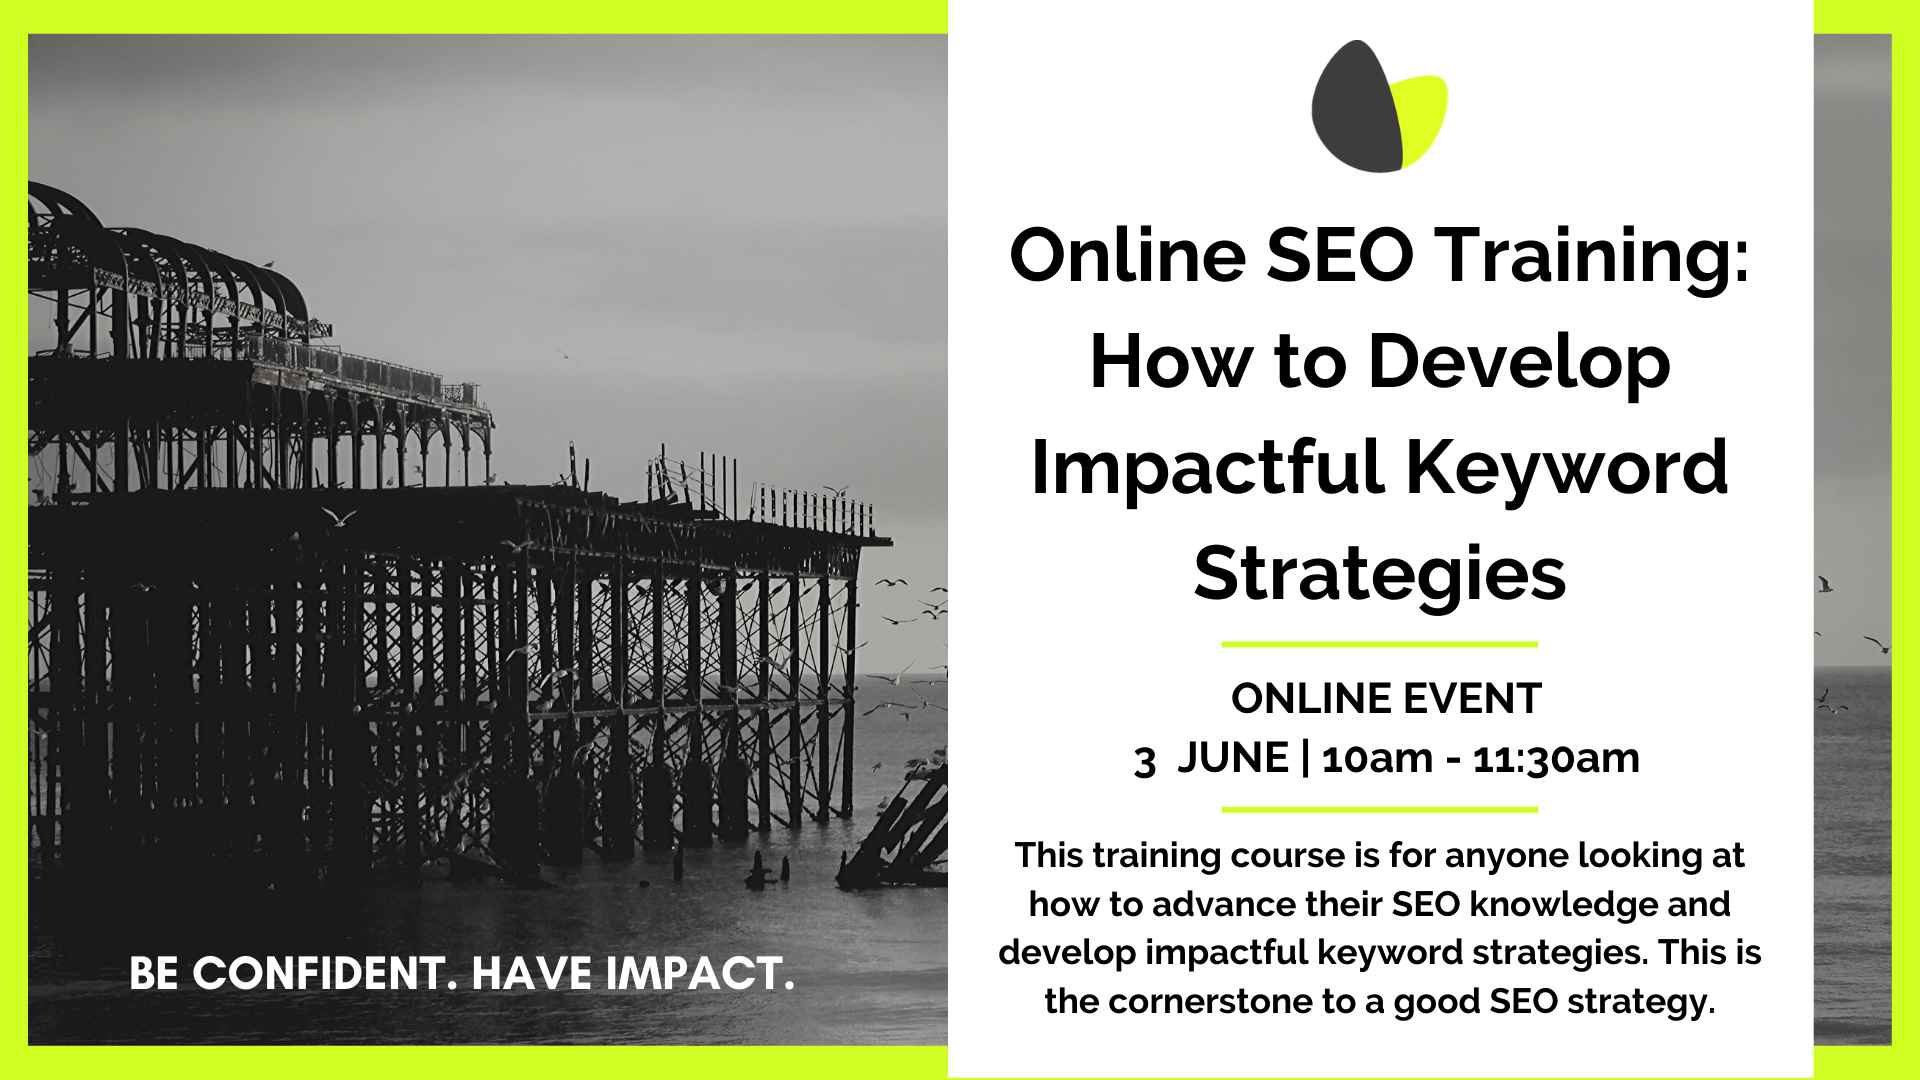 Online SEO Training: How to Develop Impactful Keyword Strategies